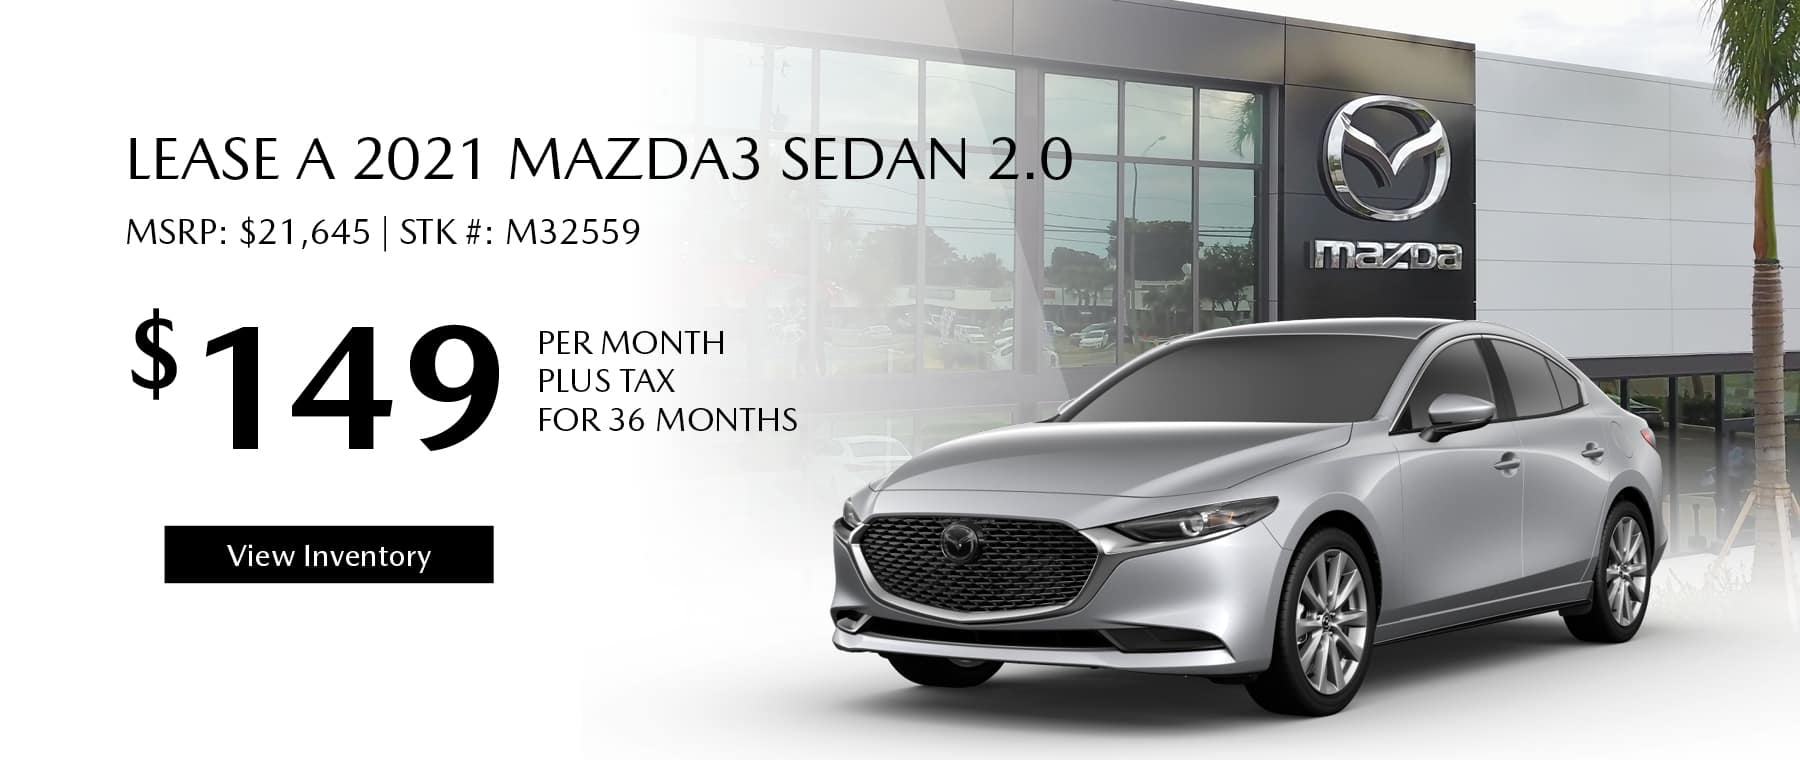 Lease the 2021 Mazda3 Sedan 2.0 for $149 per month, plus tax for 36 months. Click or tap here to view our inventory.